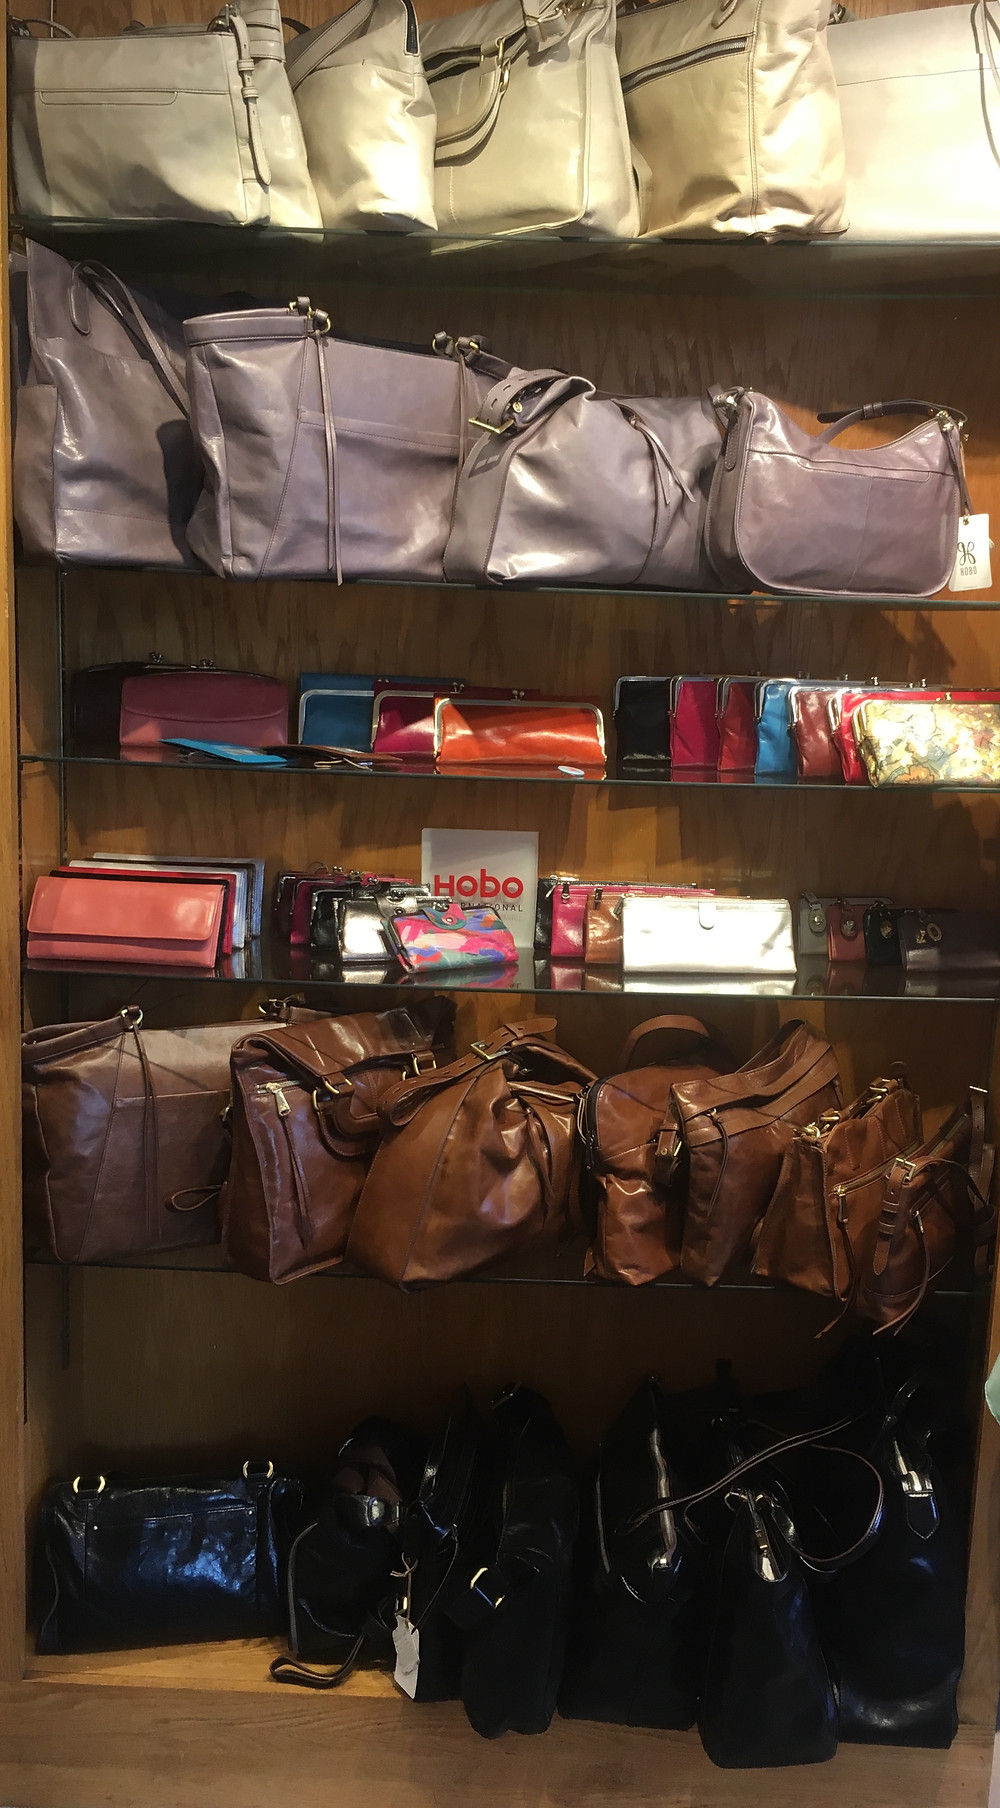 Hobo Bags and Wallets